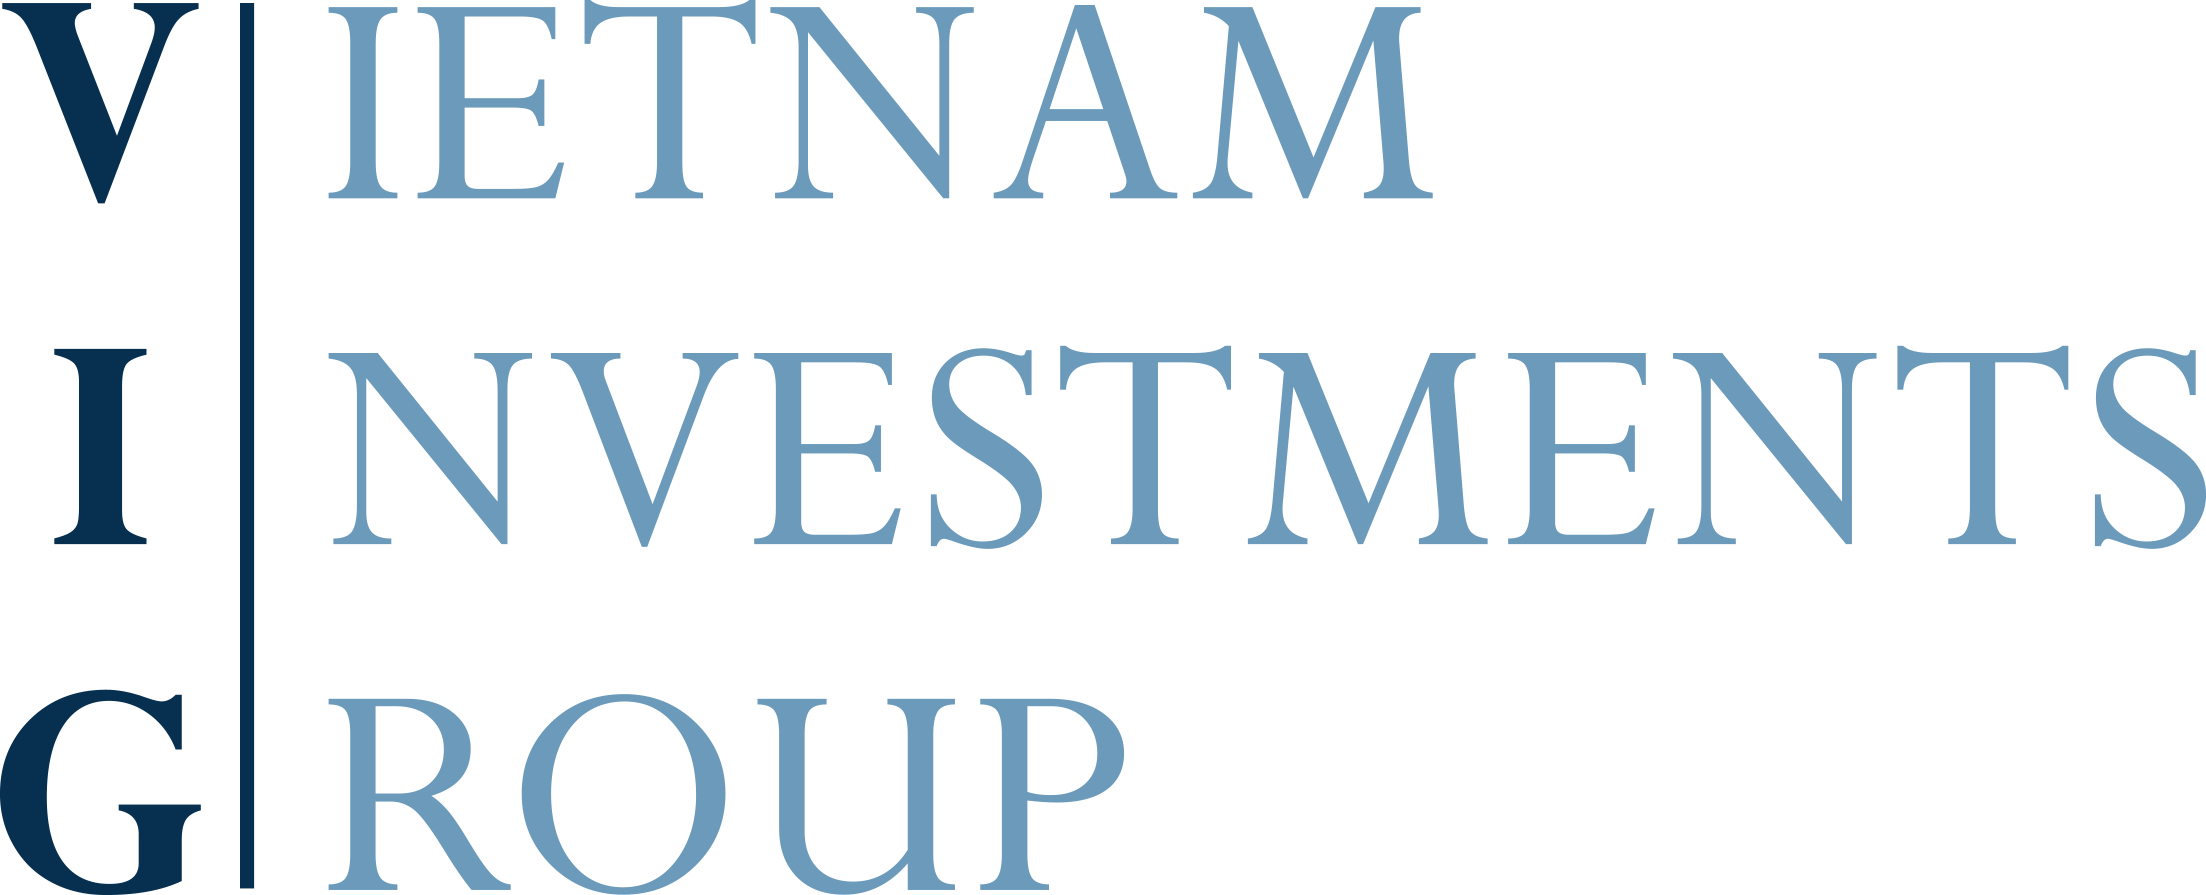 Vietnam Investments Group